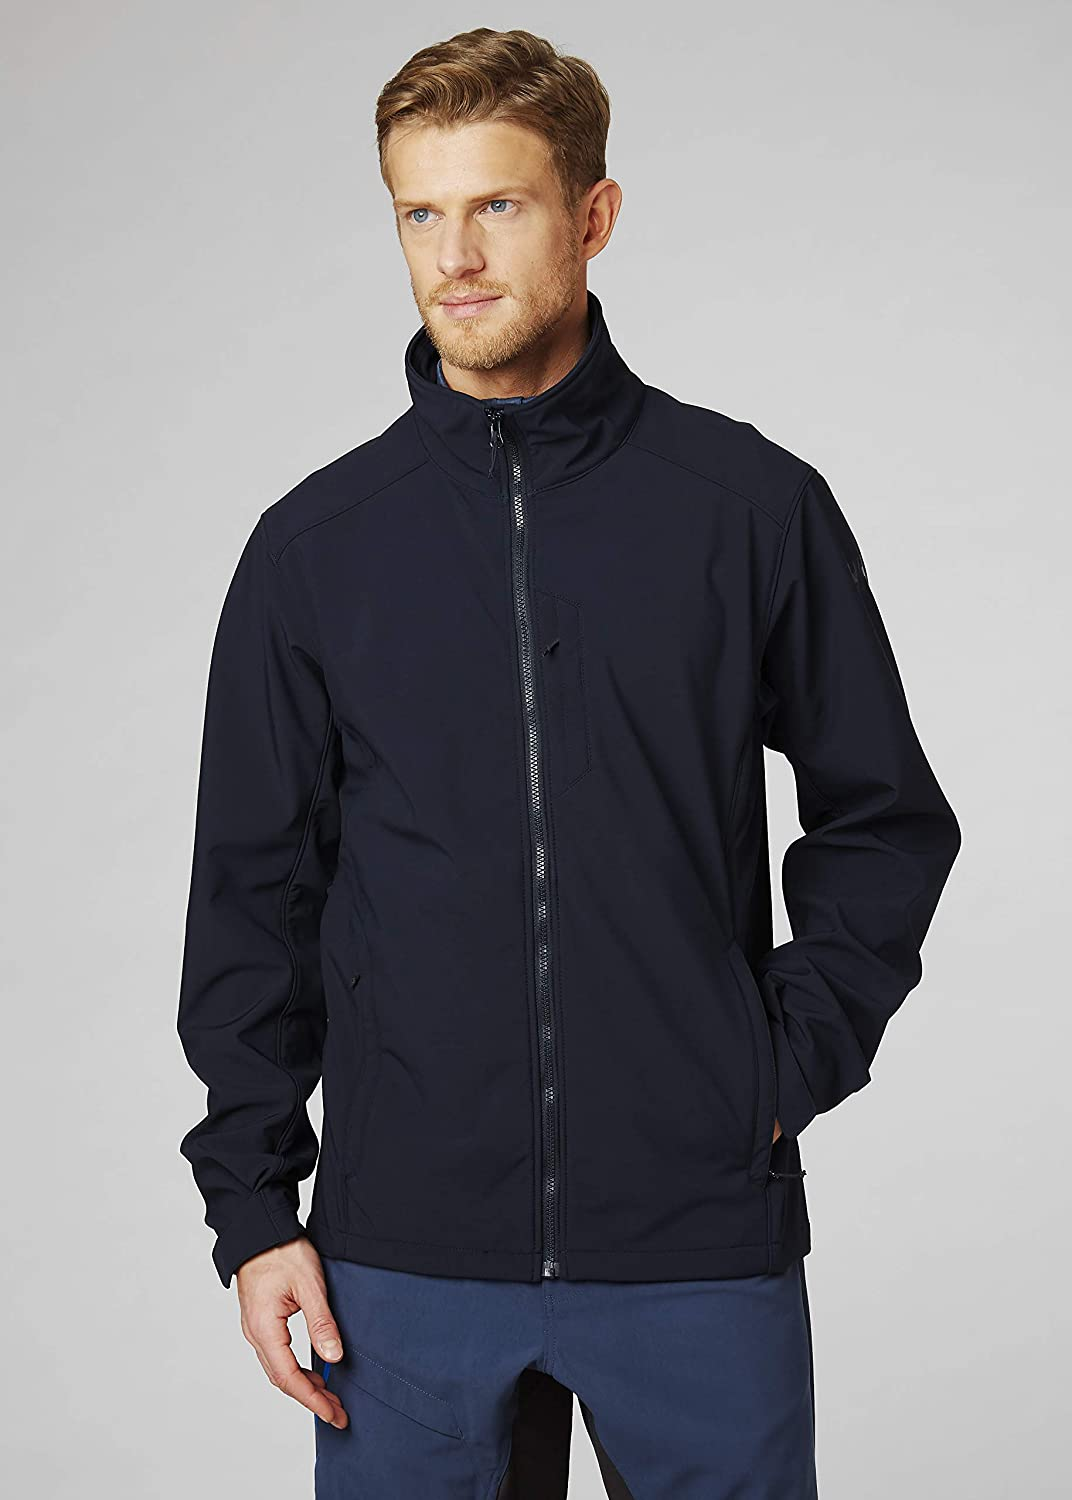 Helly Hansen Mens Paramount Softshell Water Resistant Windproof Breathable Jacket